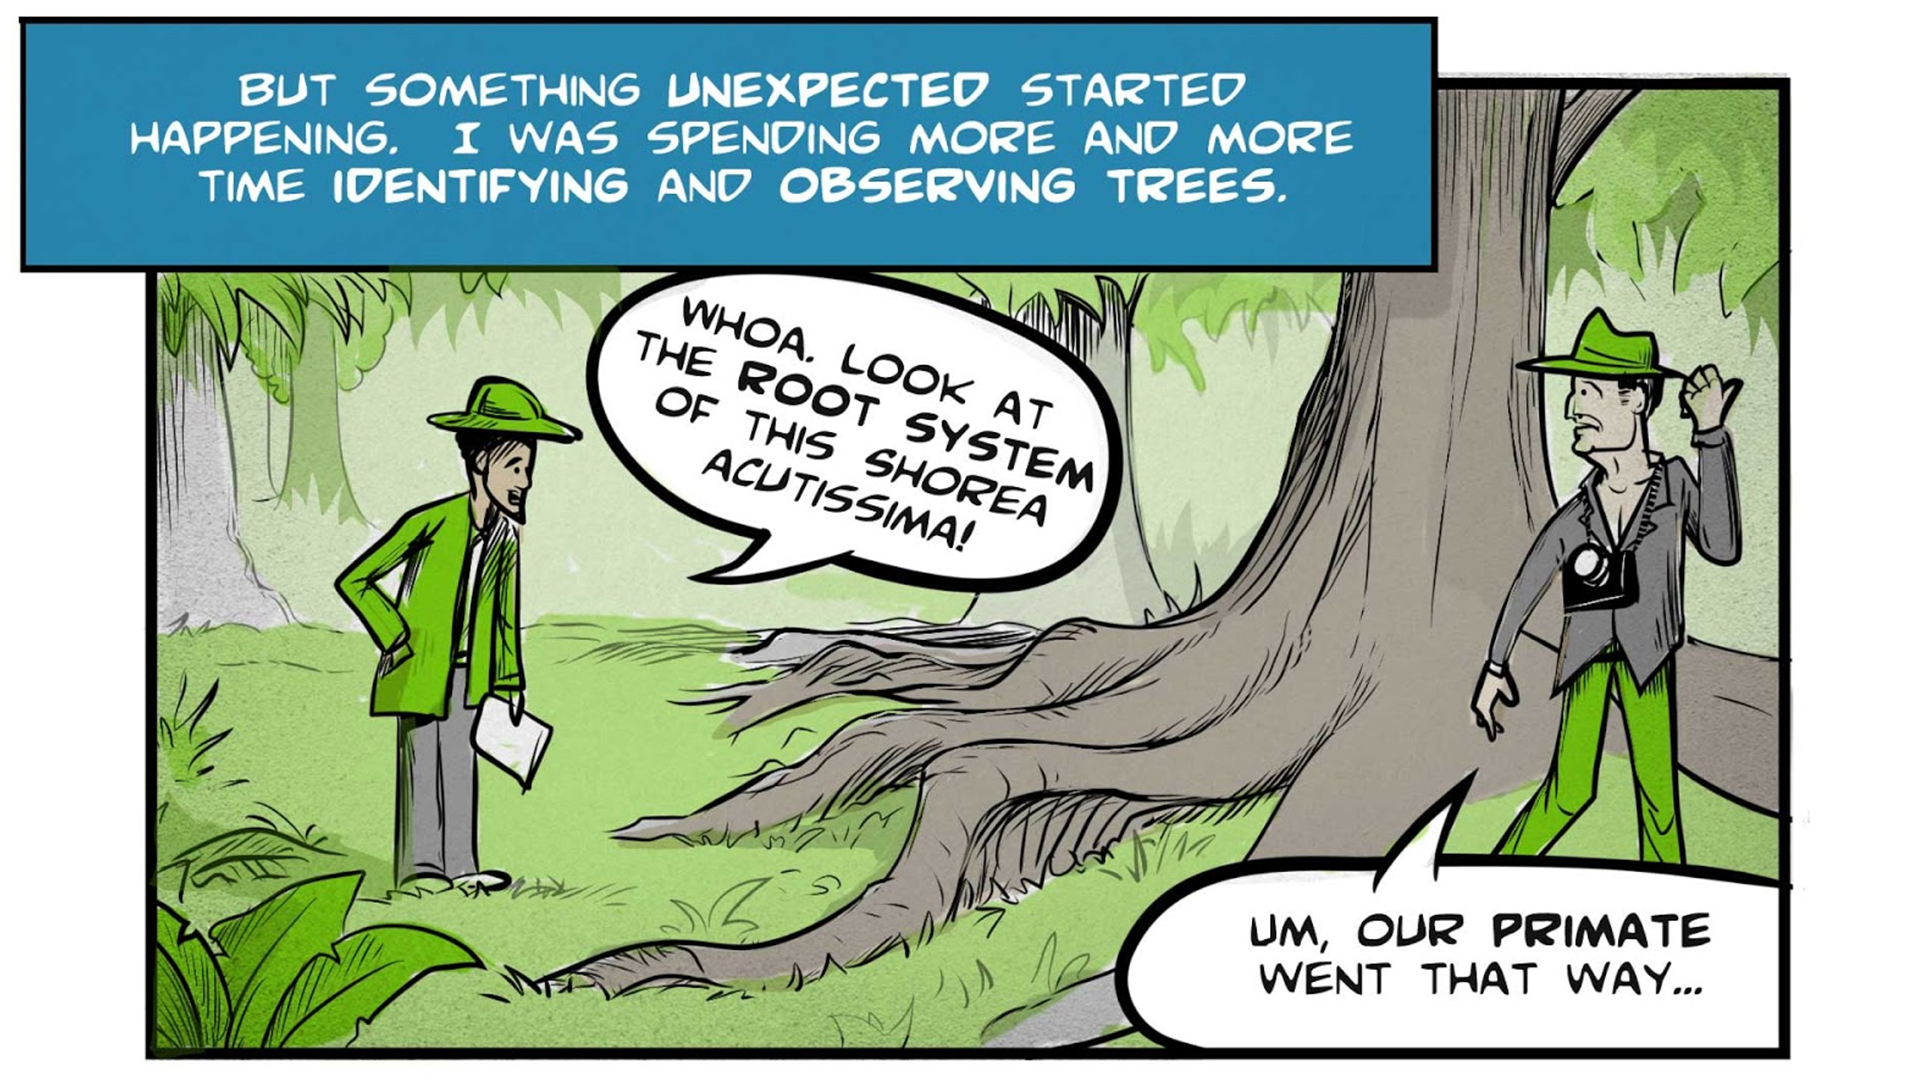 """Felix, the narrator, says, """"But something unexpected started happening. I was spending more and more time identifying and observing trees."""" He has stopped to examine the large, outspreading roots of a tree in the jungle. He says, """"Whoa, look at the root system of this Shorea acutissima!"""" The professor, impatiently walking ahead, says """"Um, our primate went that way..."""""""